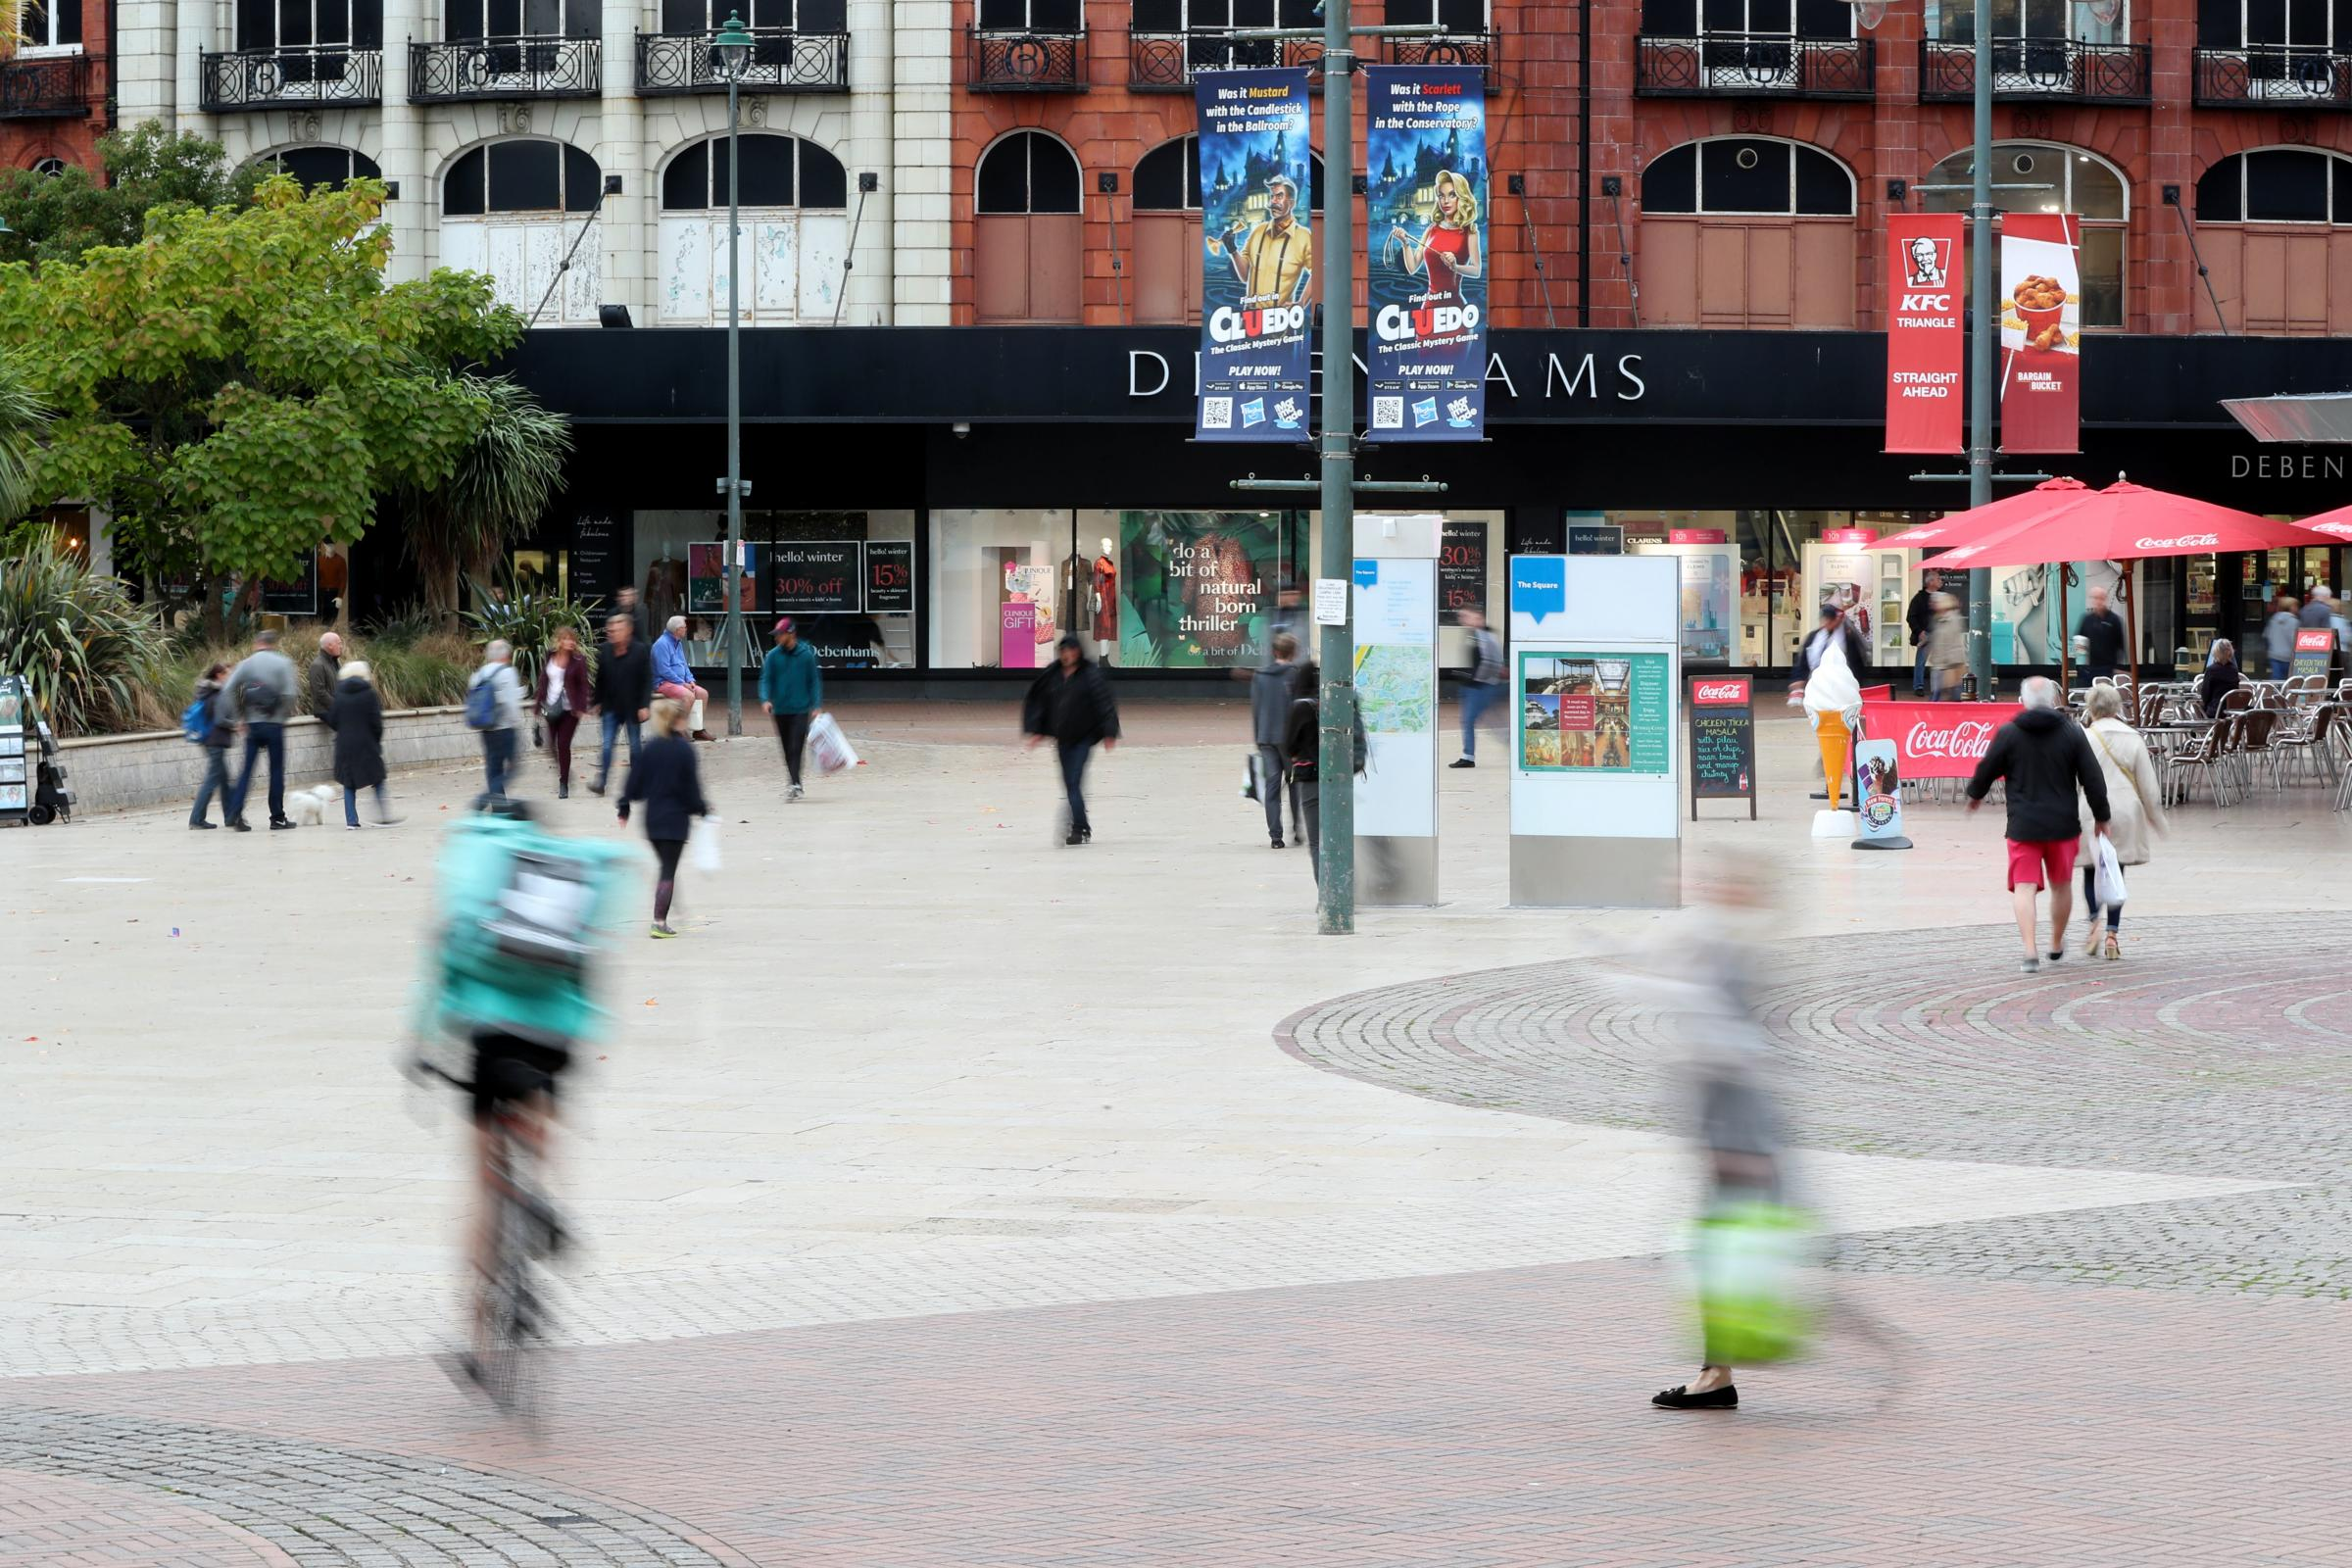 'Aggressive' man is ordered to leave the Square after 'alcohol-fuelled' trouble